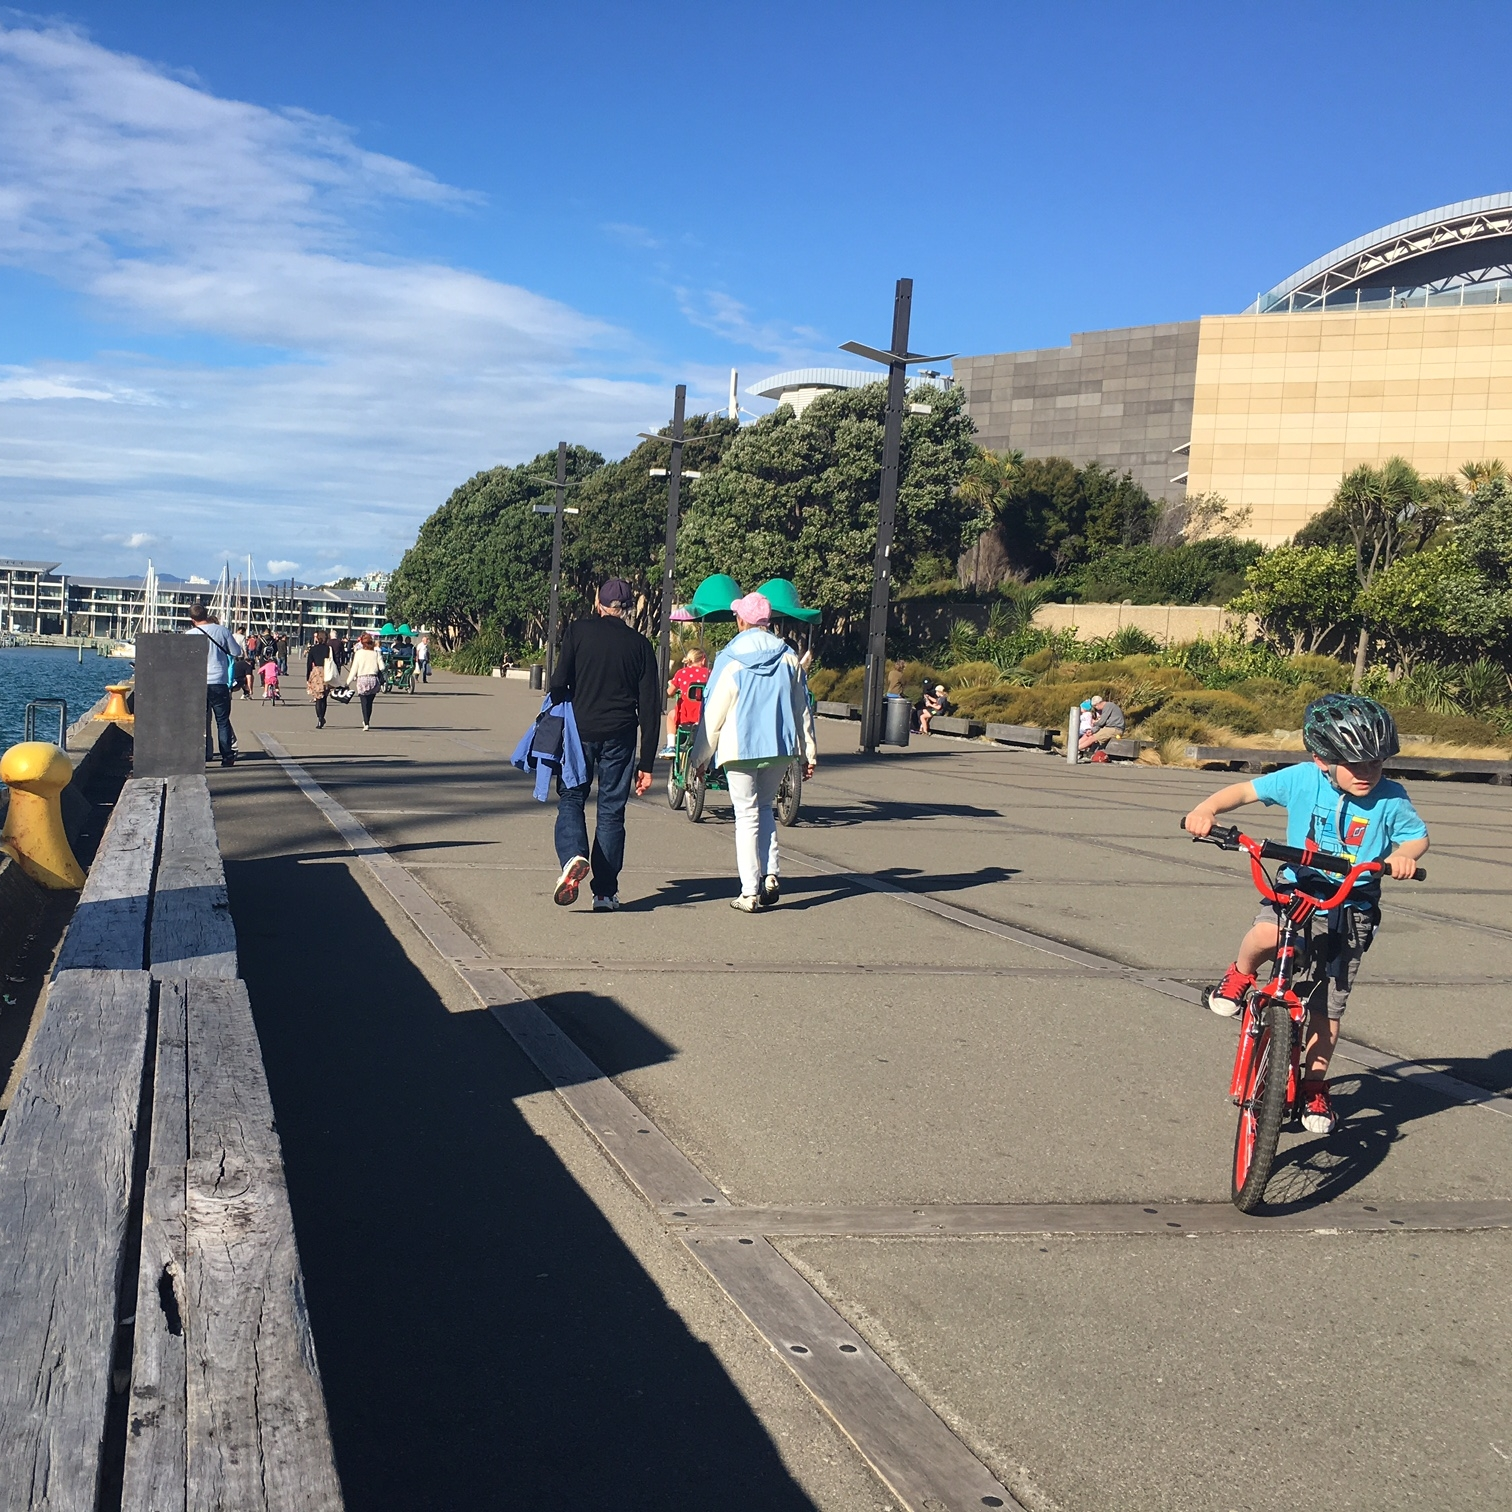 Waterfront and Te Papa museum, Wellington by The Doubtful Traveller